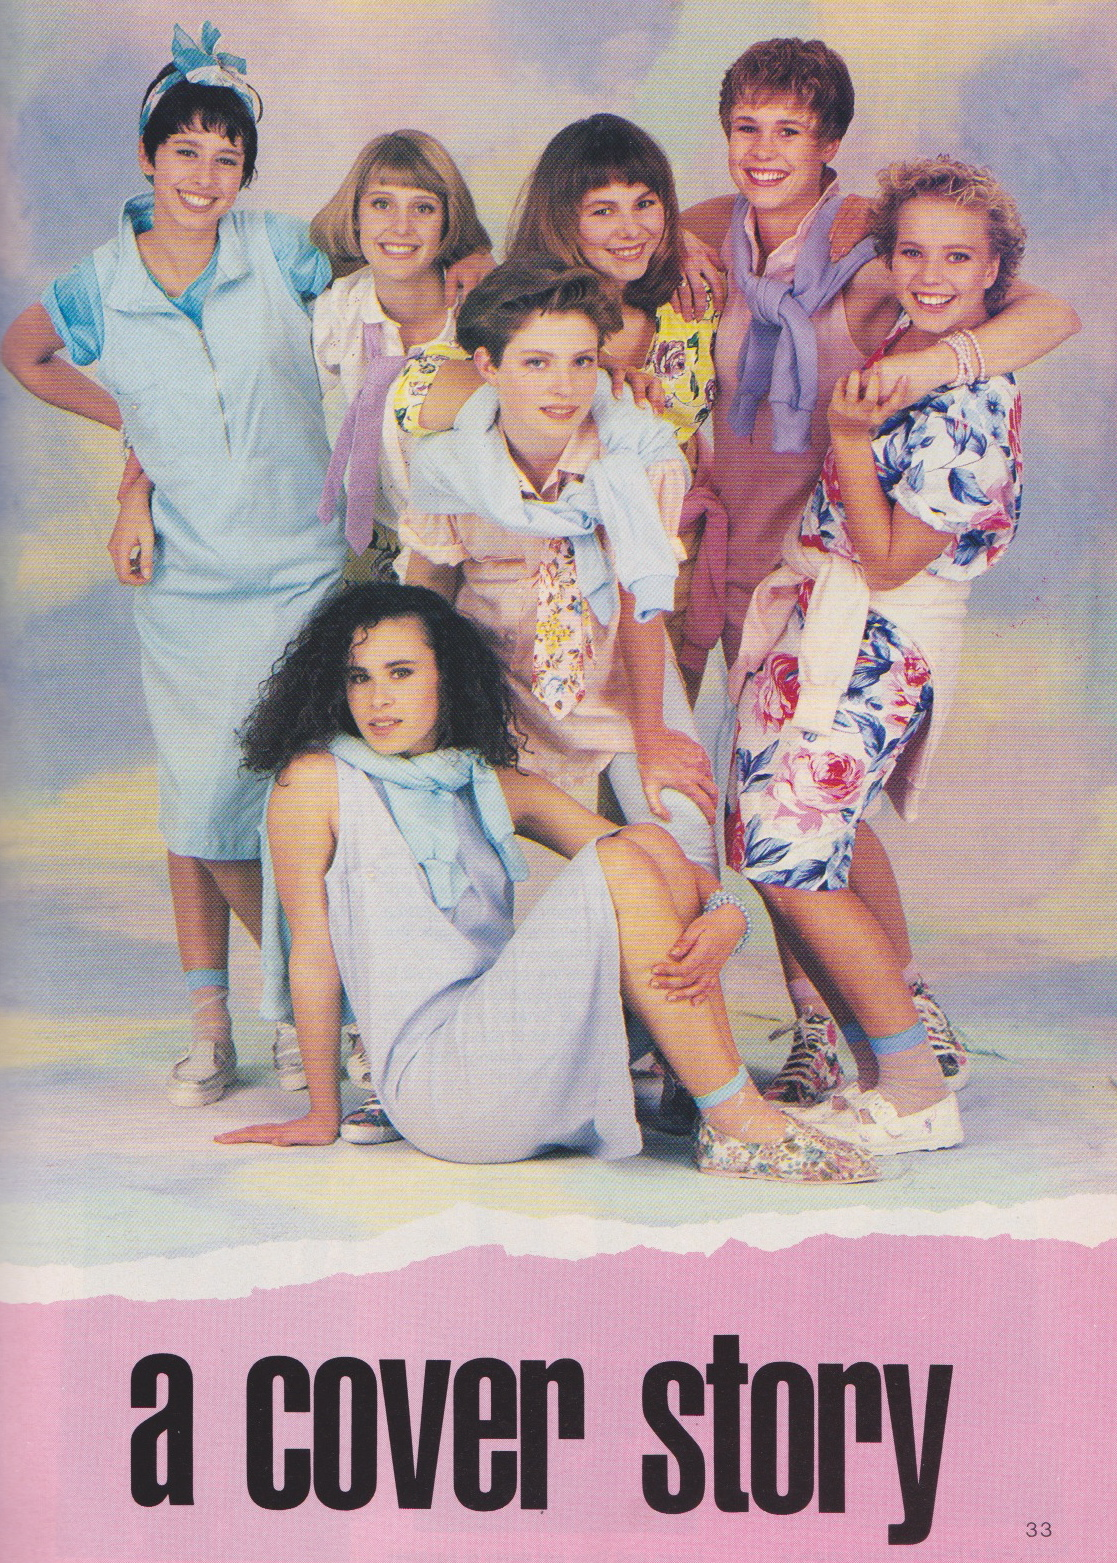 Dolly Covergirl Competition | 1985 Winners Article 01.jpeg